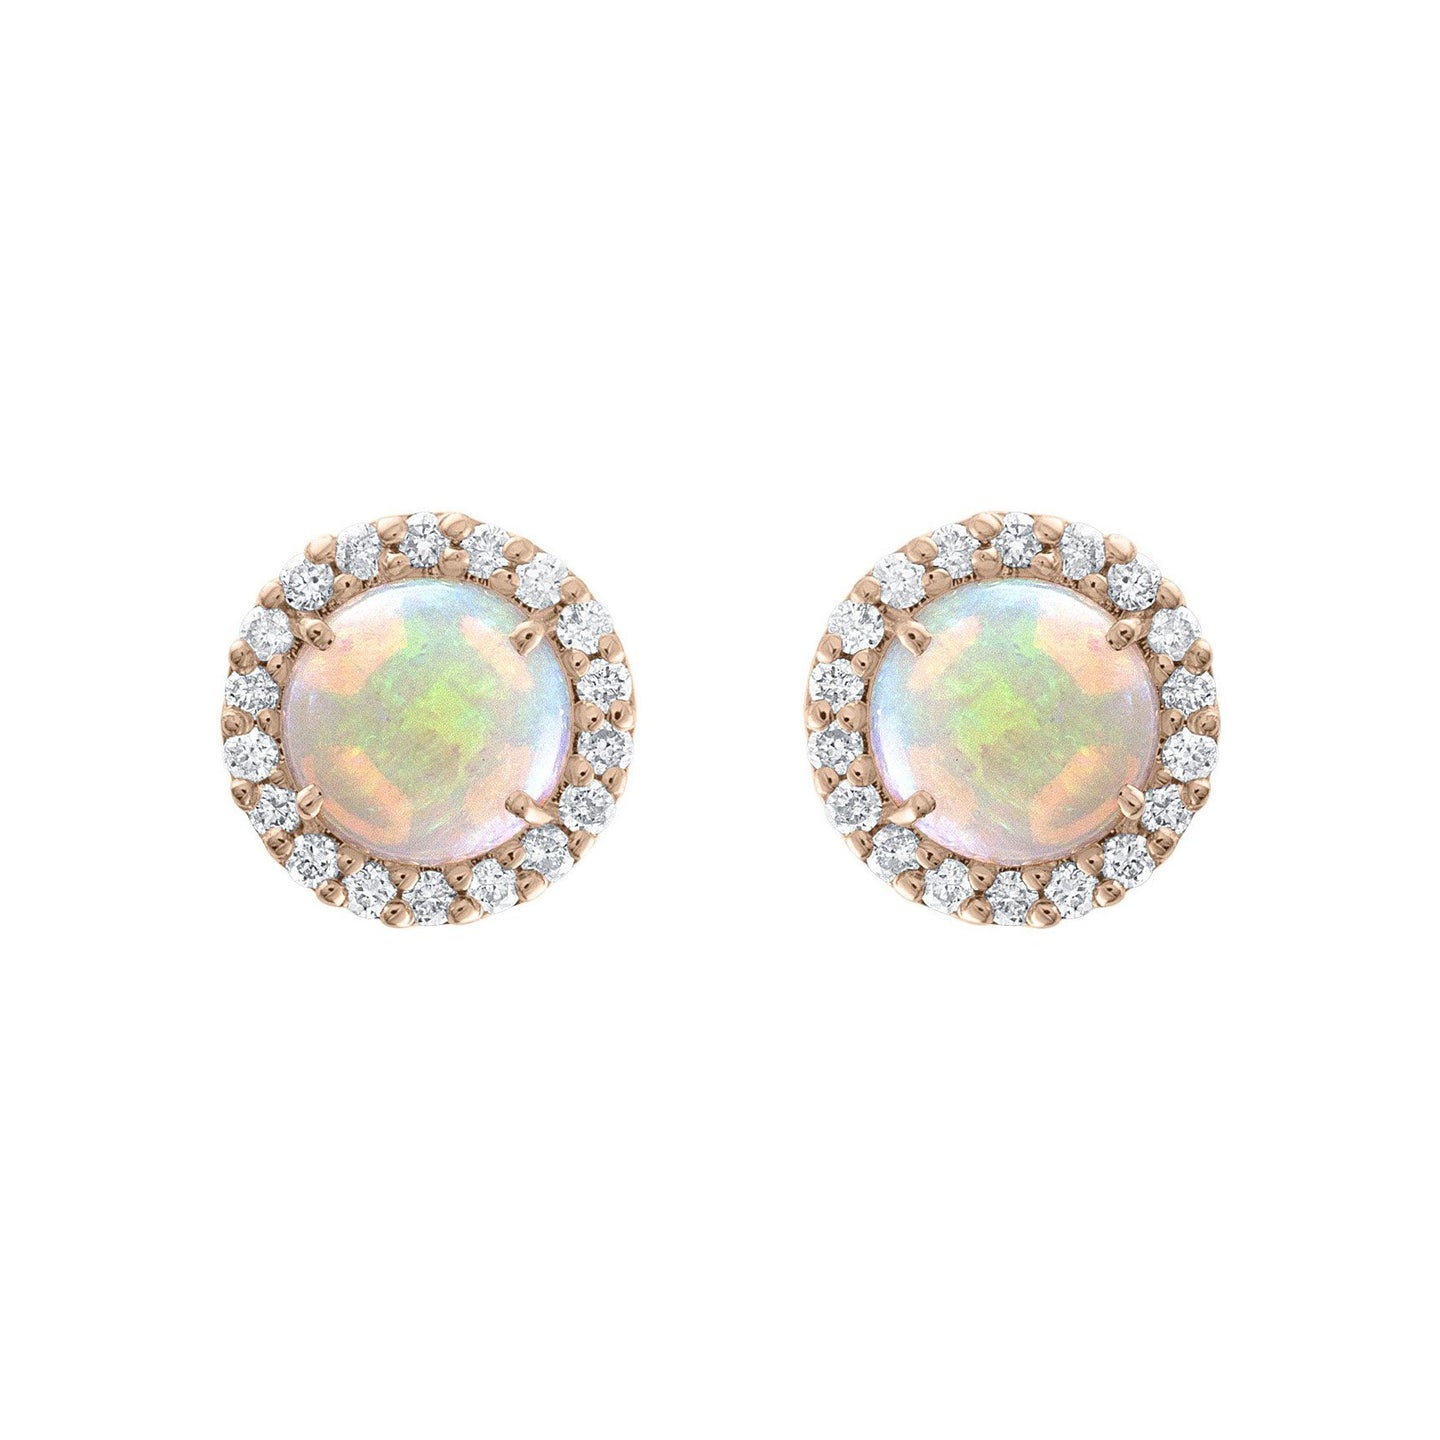 Sabel Collection 14K Rose Gold Round Opal Diamond Halo Stud Earrings